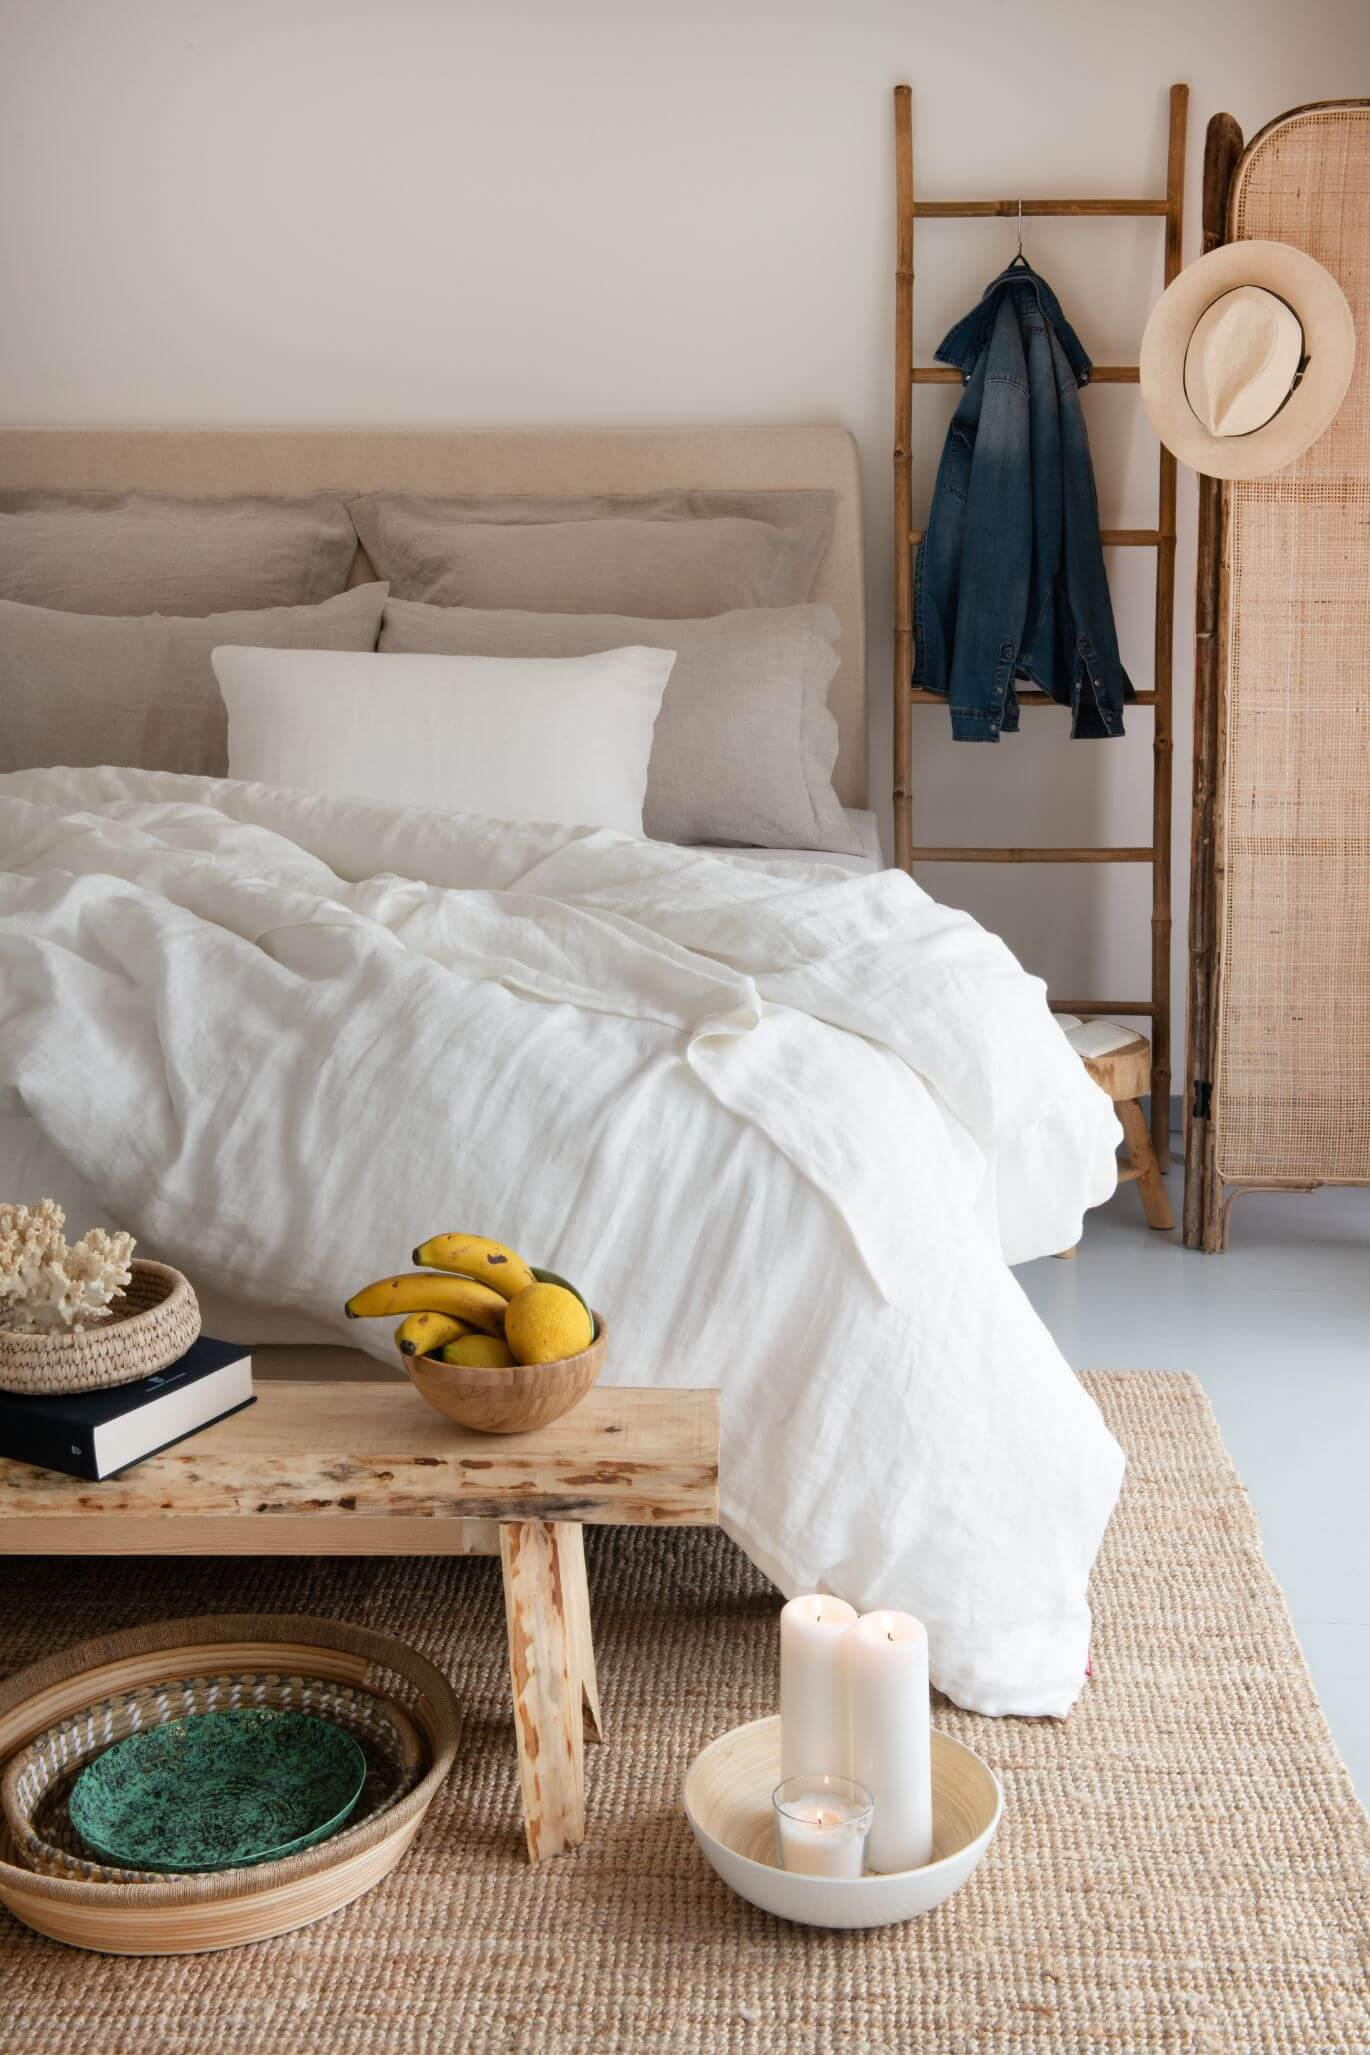 Bedroom with Marialma's hemp bed sheets and earth tones